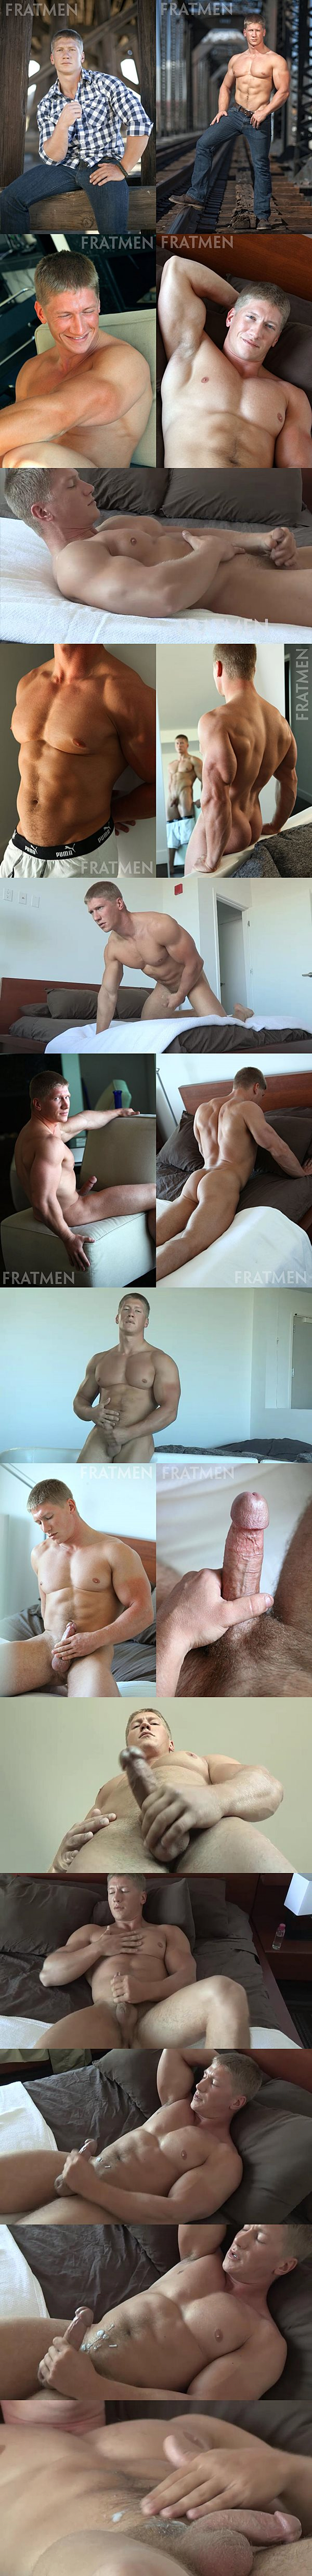 Super handsome athletic jock Hayden shows off his hot ripped body and shoots his big load in Hayden Up-Close at Fratmen 02